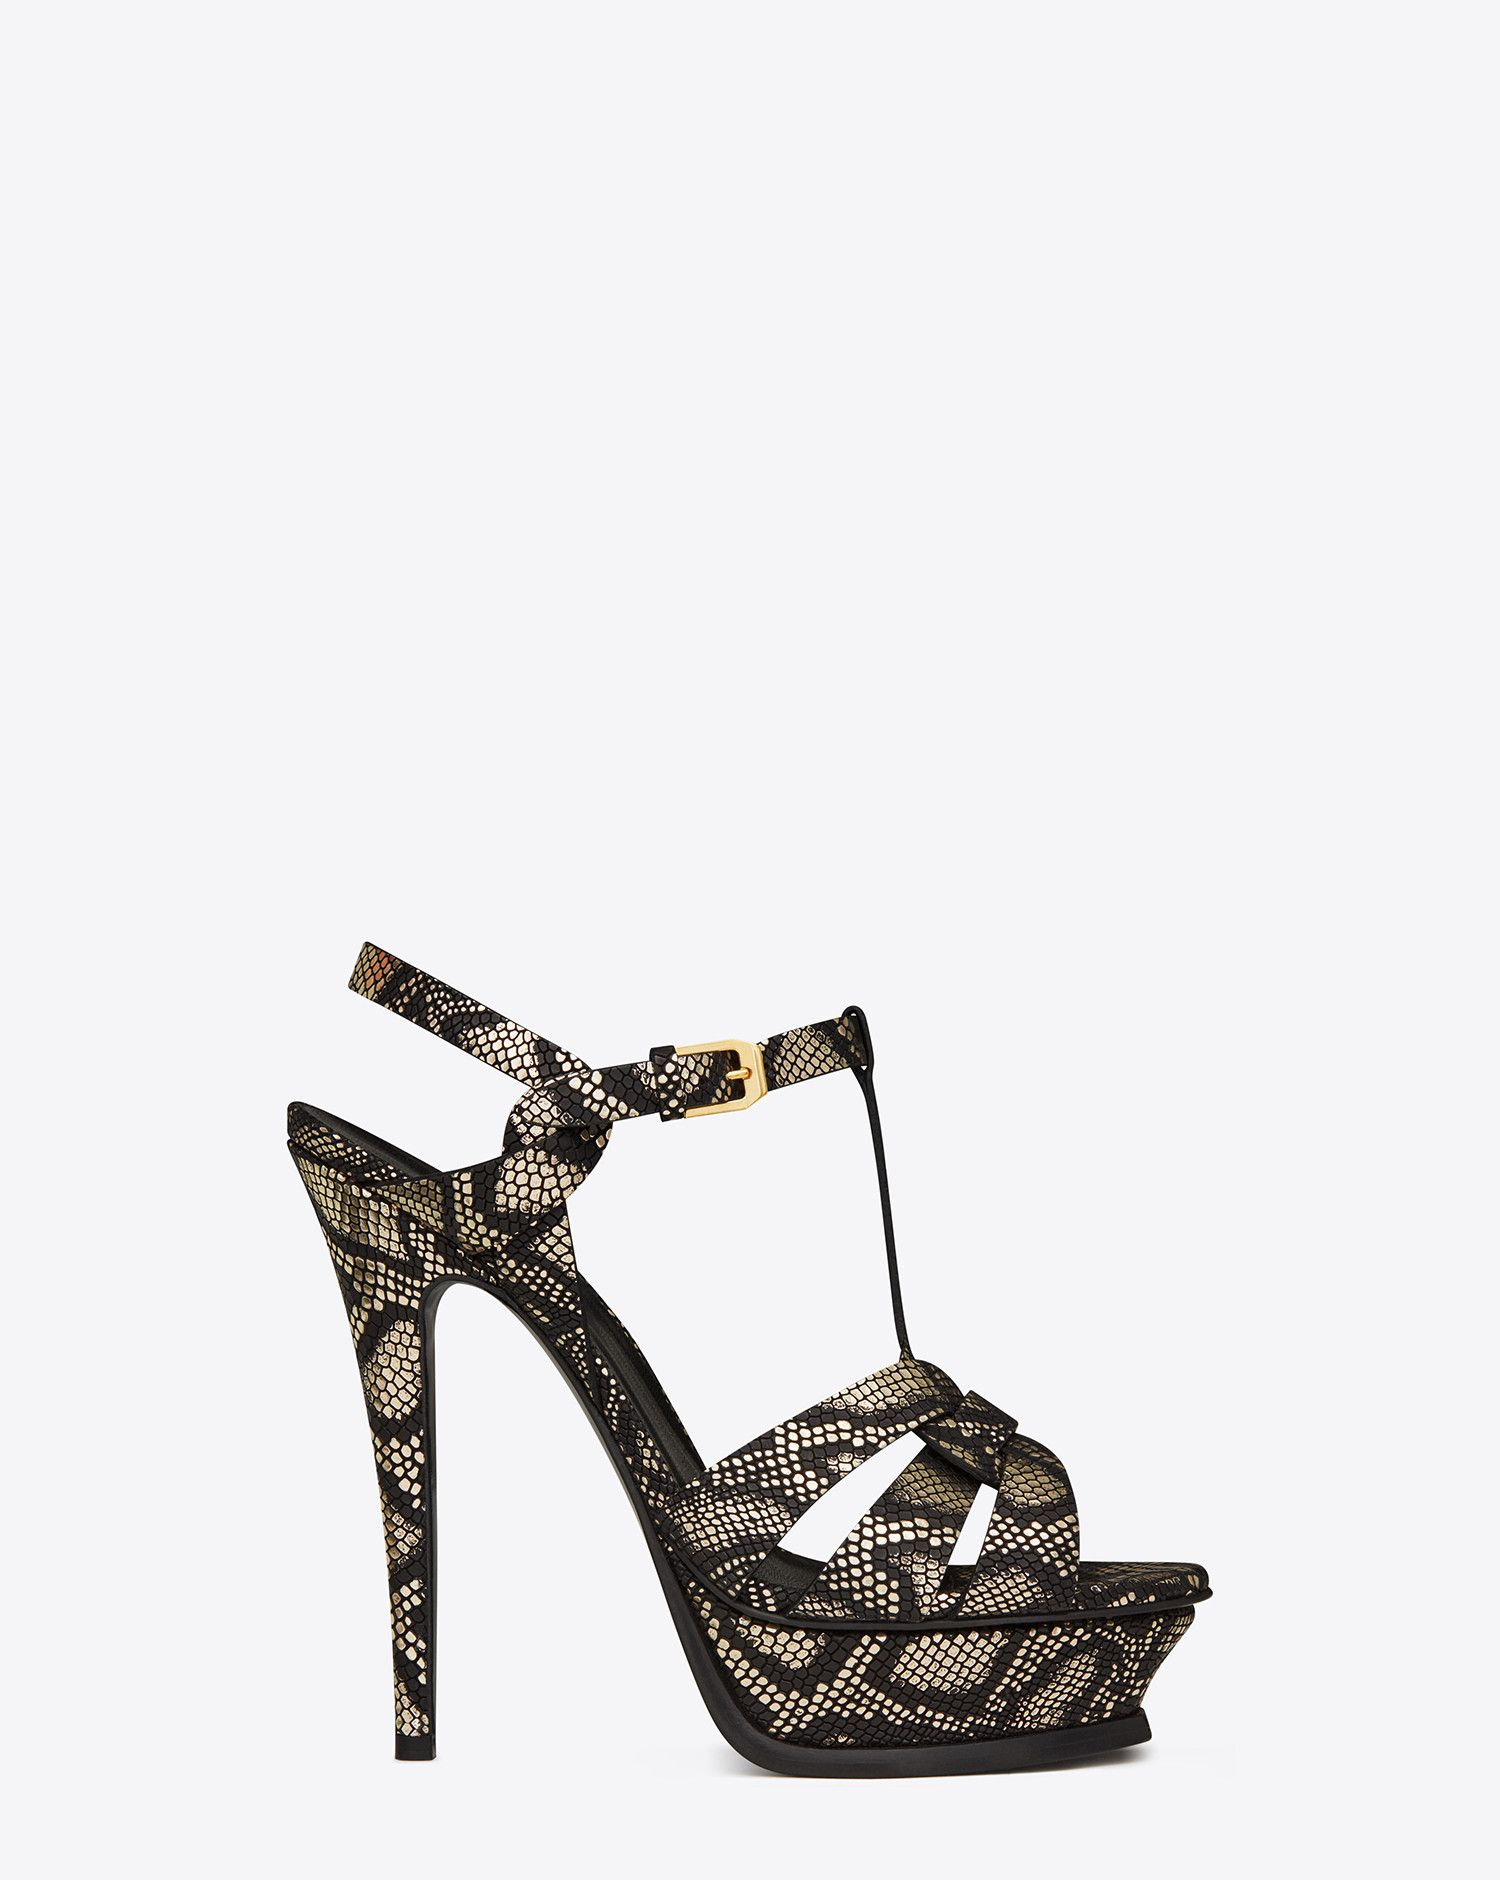 0f7072ea876 Saint Laurent Classic TRIBUTE 105  995.00 Sandal In Black And Gold Python  Embossed Metallic Leather